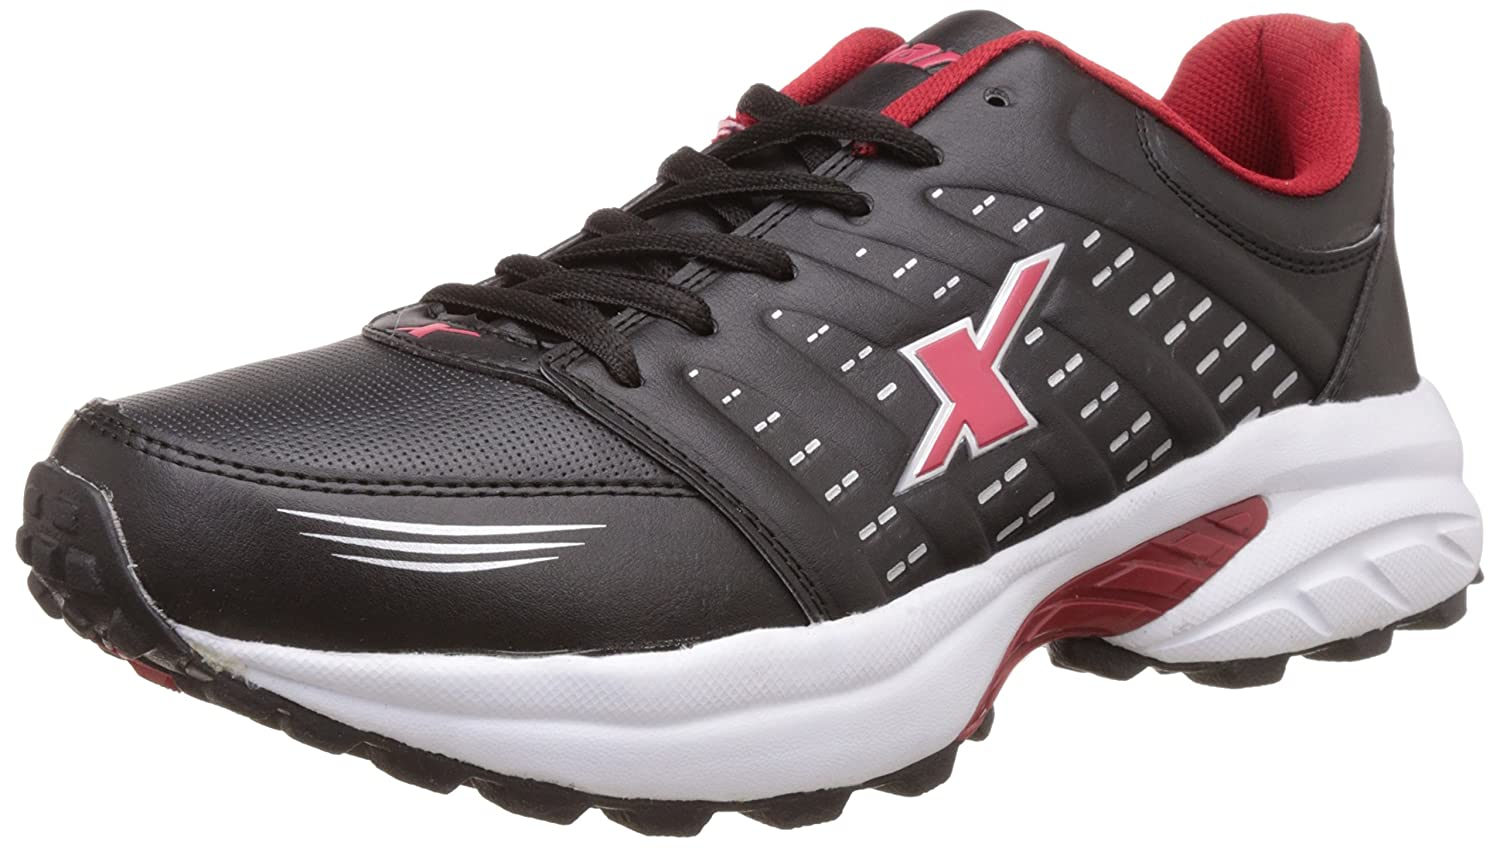 a6f6db3604 Sparx Men s Running Shoes  Buy Online at Low Prices in India - Amazon.in